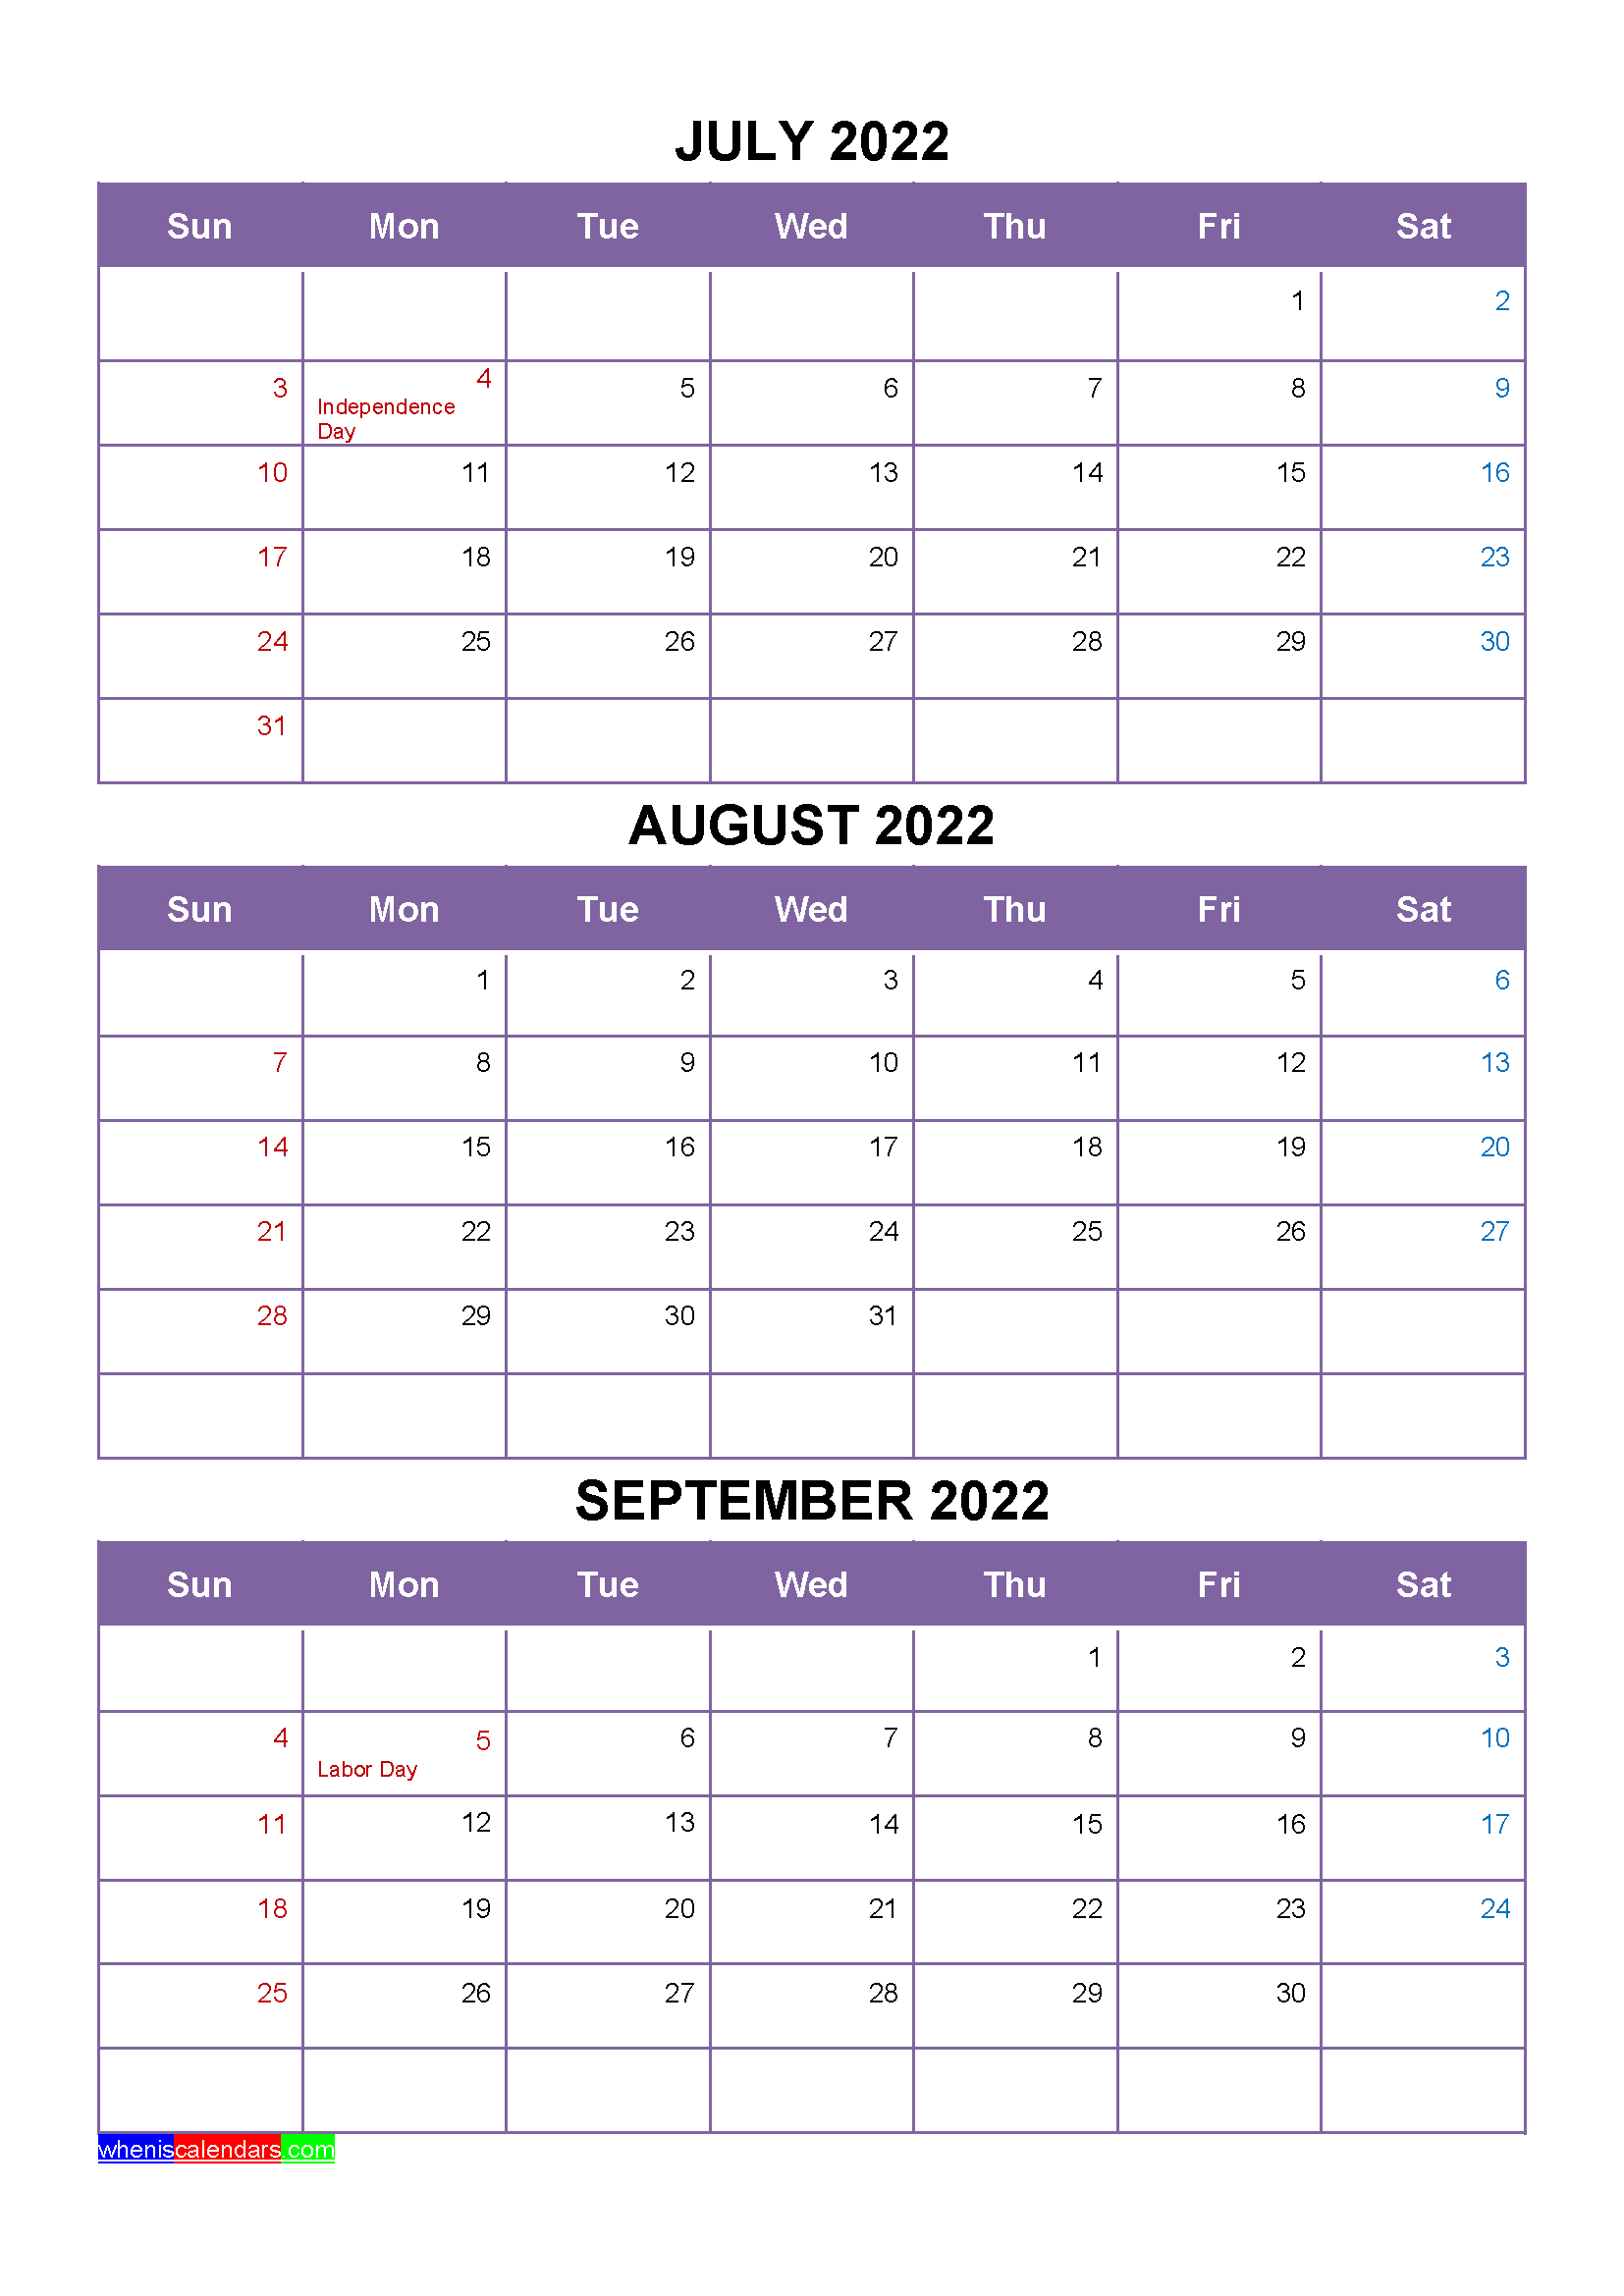 Free Calendar July August September 2022 with Holidays